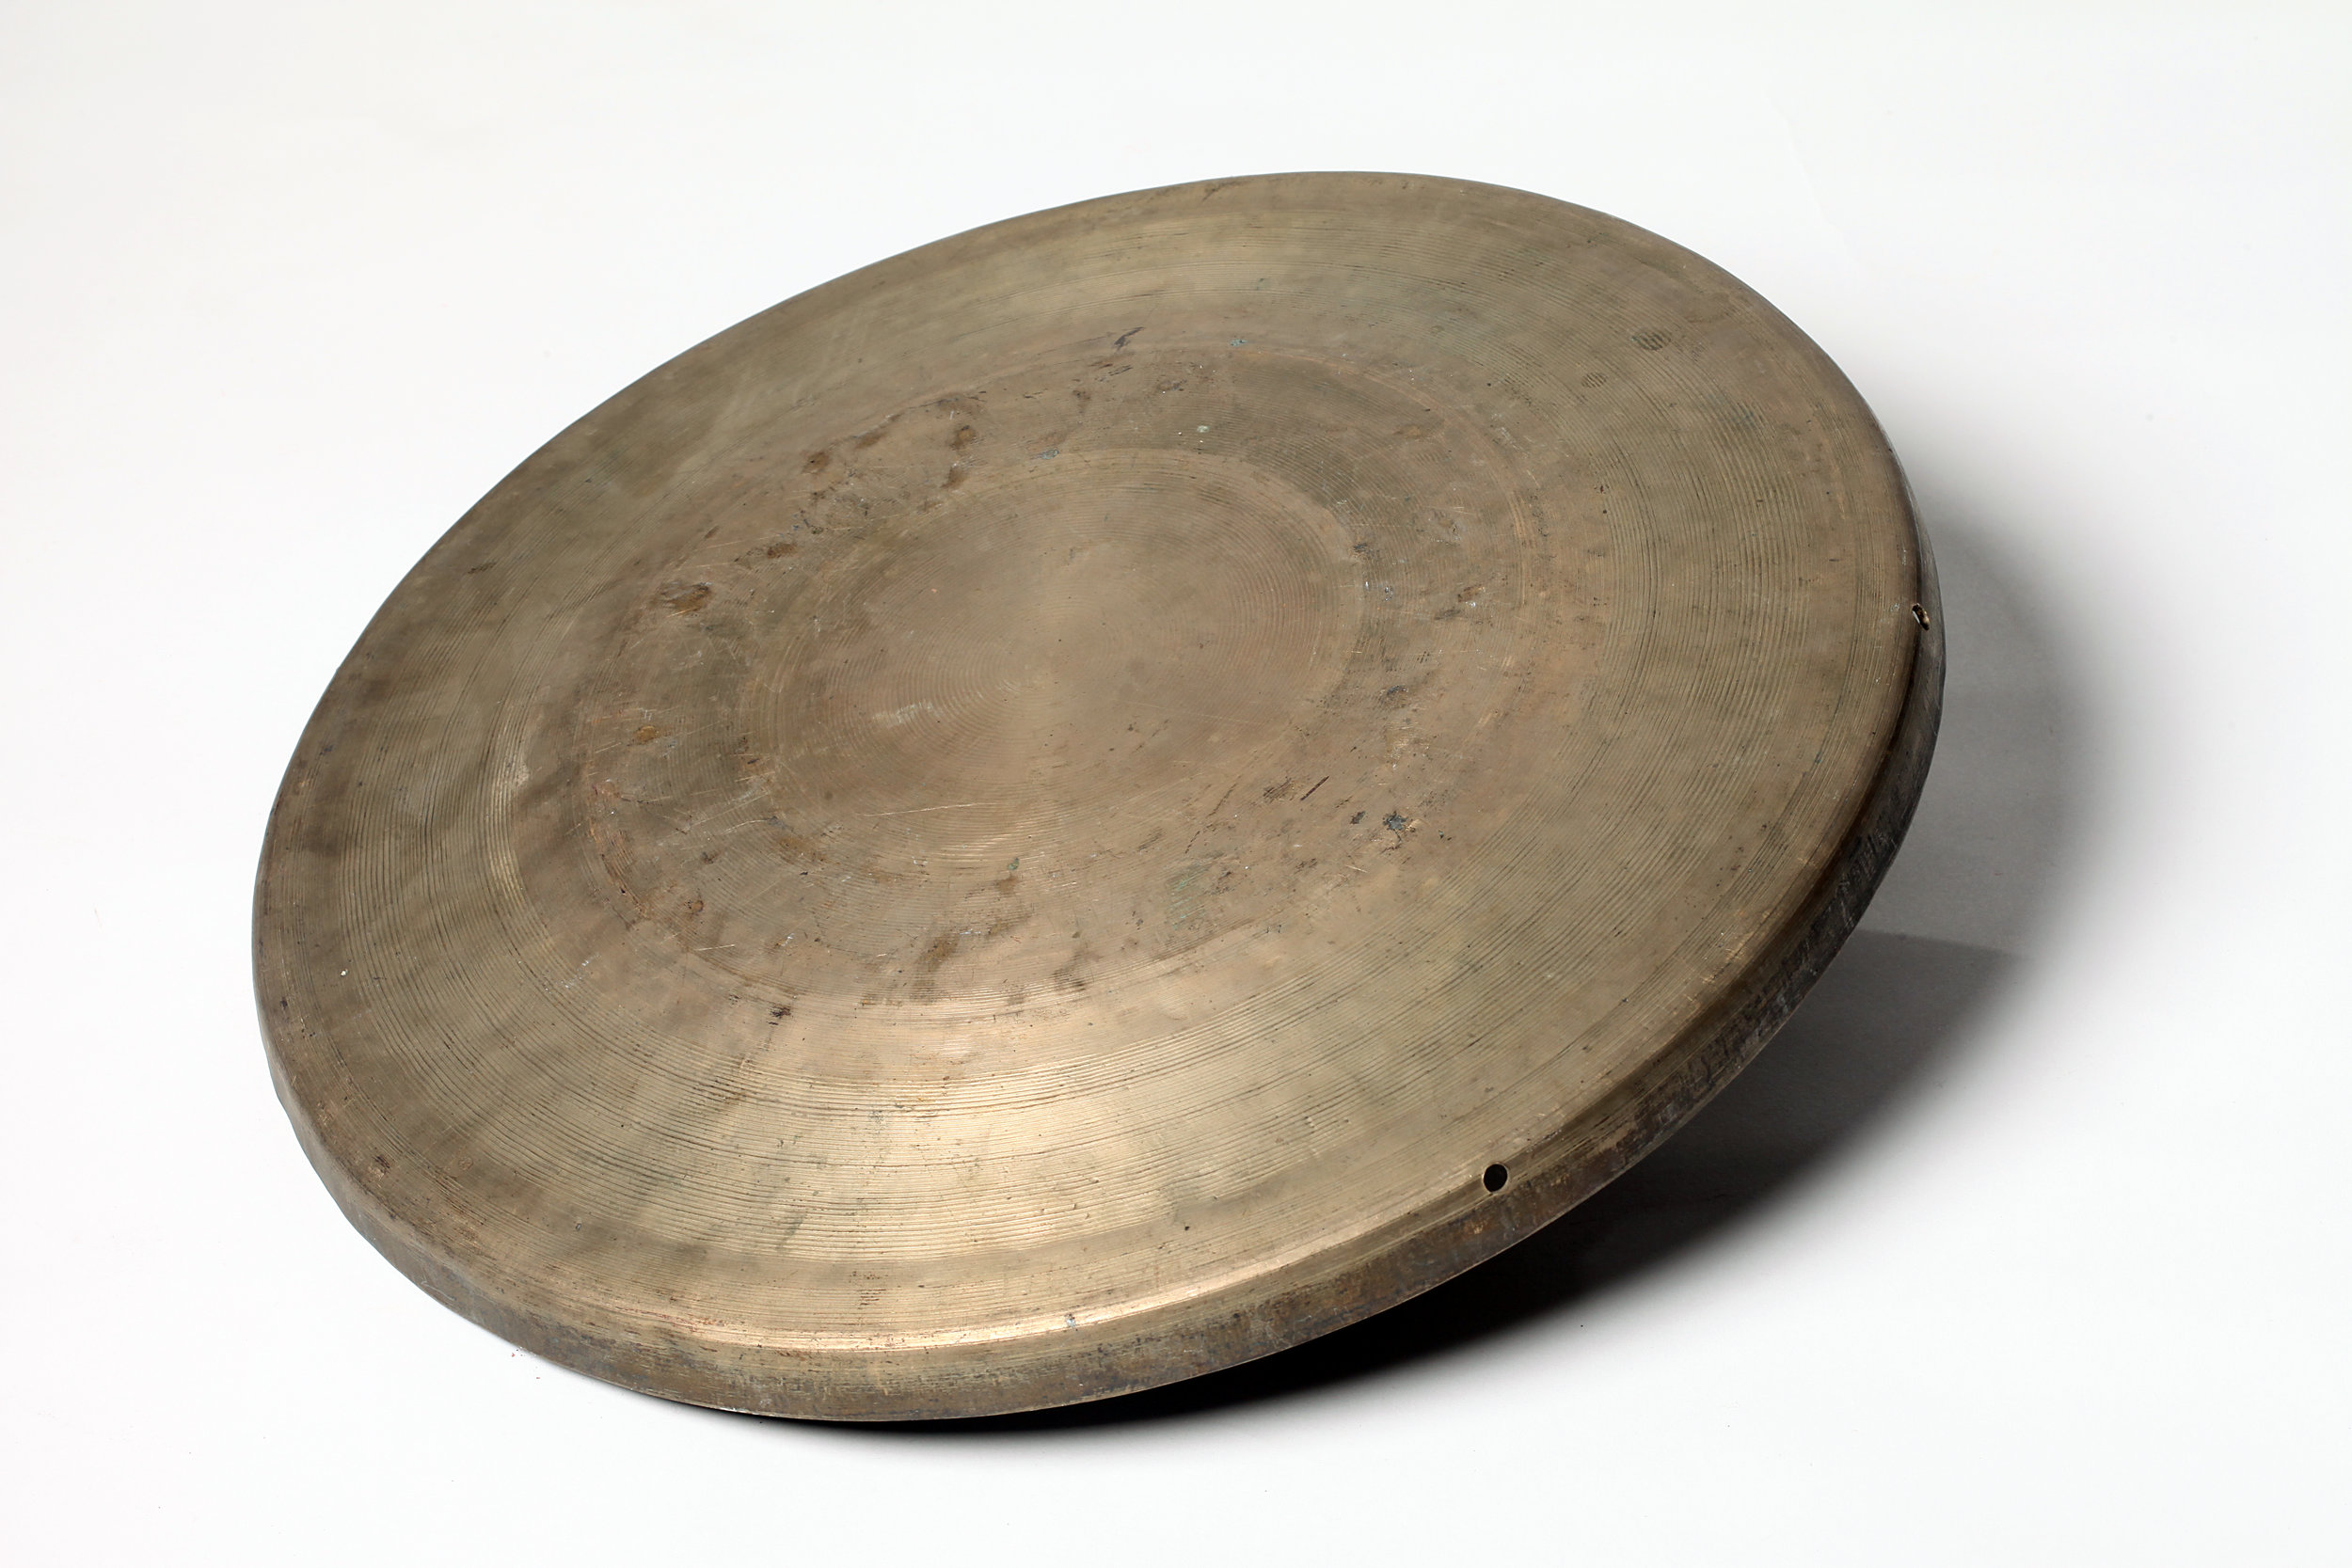 Daluo   (large gong) is a percussive instrument made of bronze. Its sound is full, deep, rich and sustaining, which can be used to invoke emotions and strengthen the rhythm during the performance. Typically it is beaten in plays dominated by  laosheng  (old male roles) and  hualian  (painted-face roles), and martial plays.